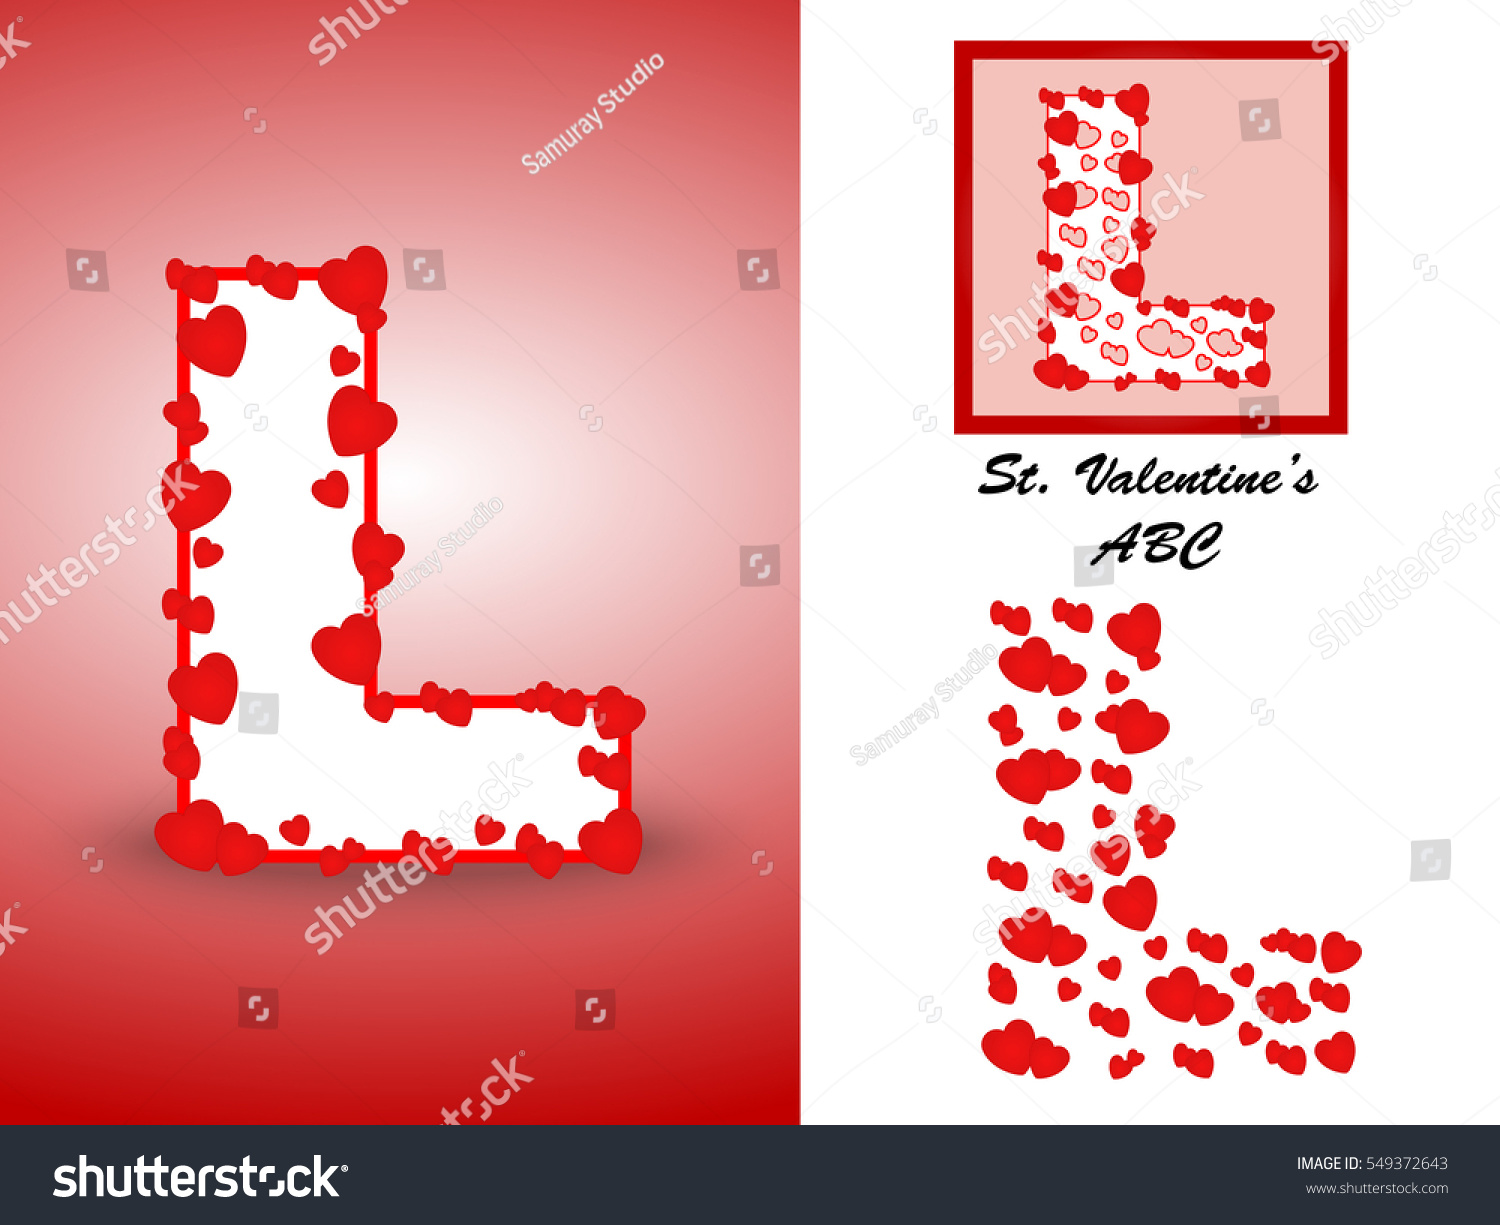 Alphabet Letter L Red Heart Valentine Stock Vector (Royalty Free ...